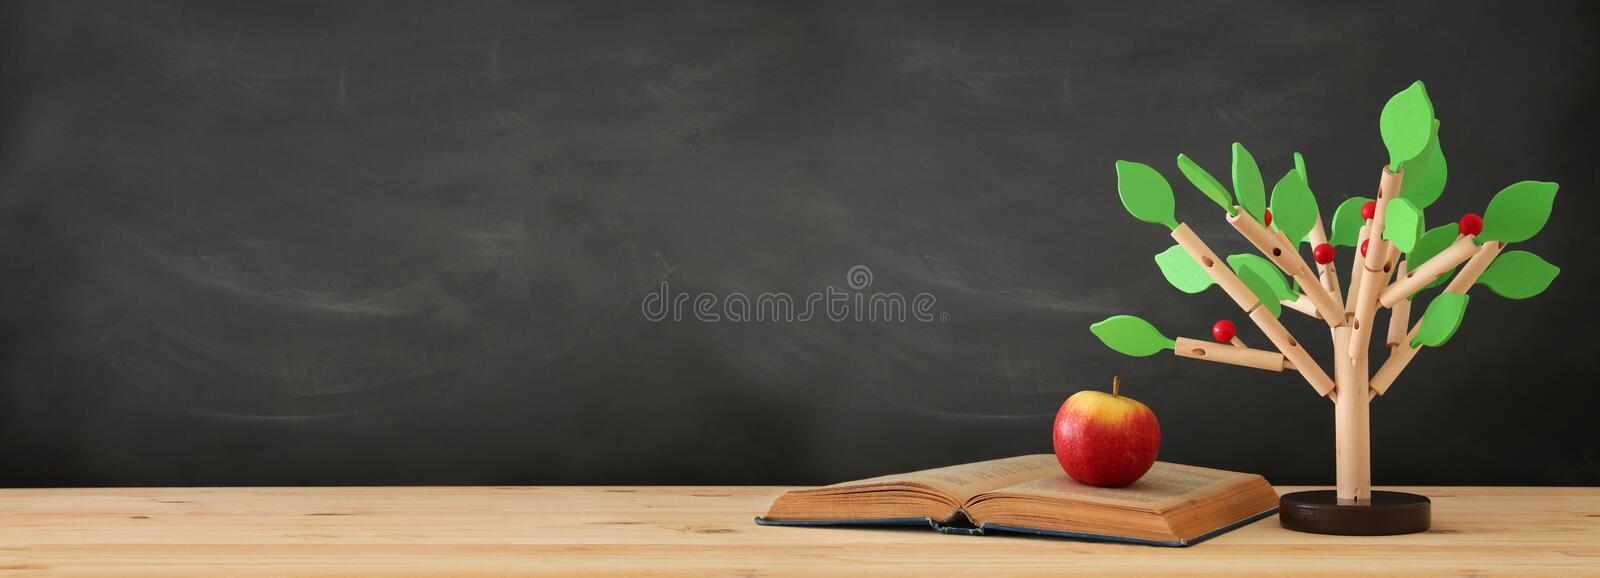 banner of open book and wooden tree puzzle over blackboard background. education and knowledge concept. royalty free stock photo